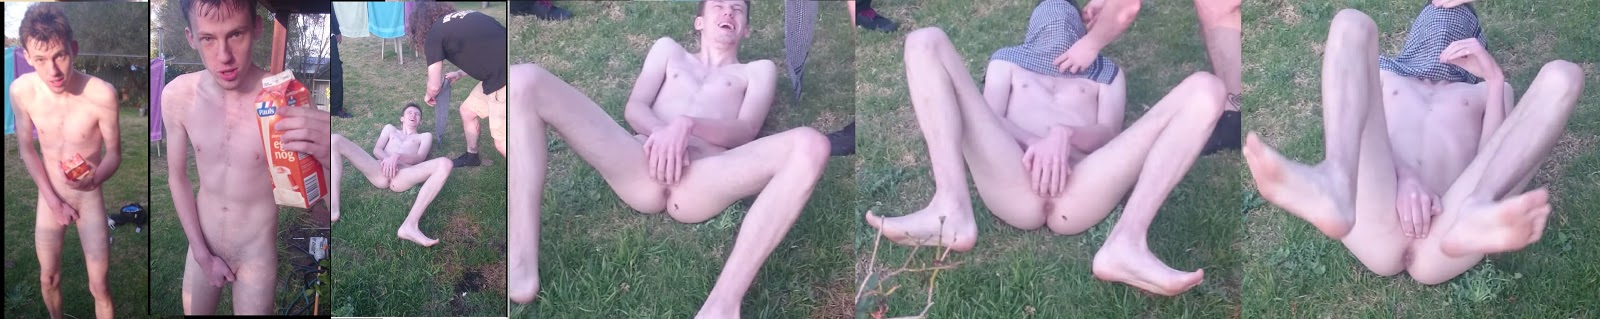 russian nude dudes